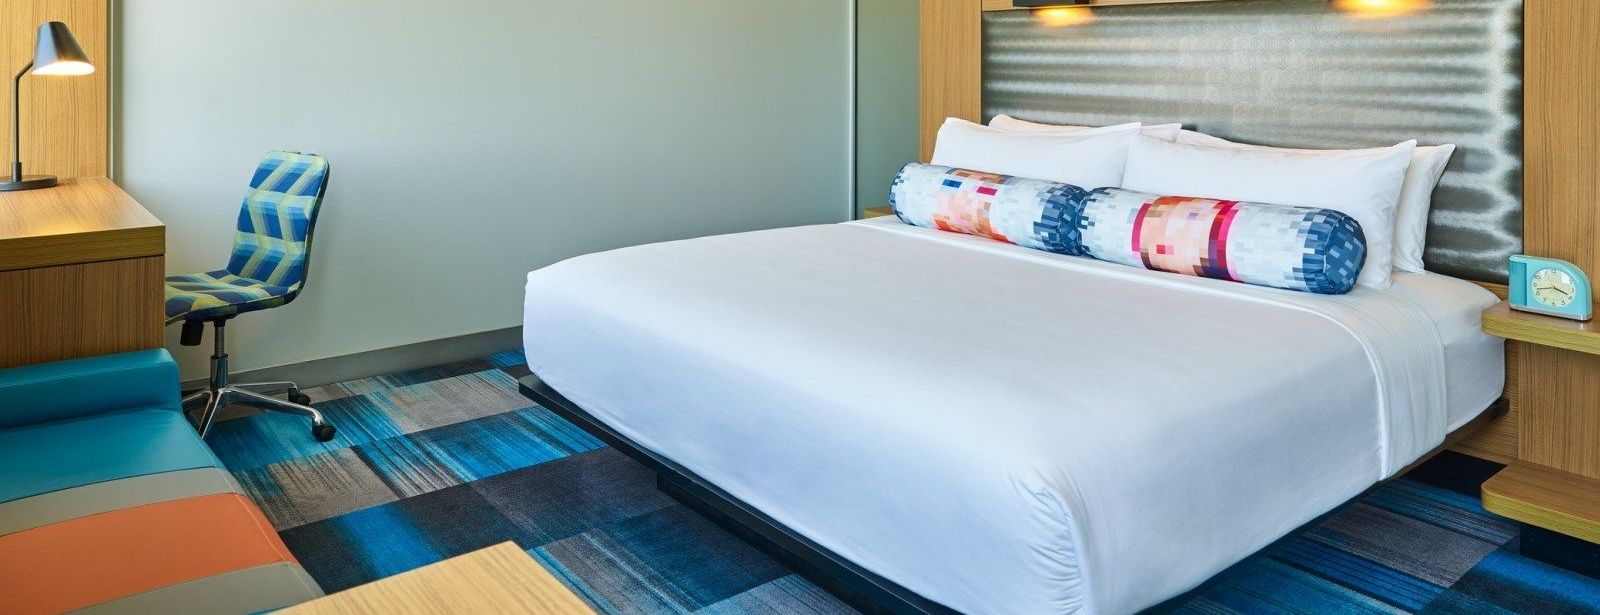 Plano Accommodations - Accessible Guest Room